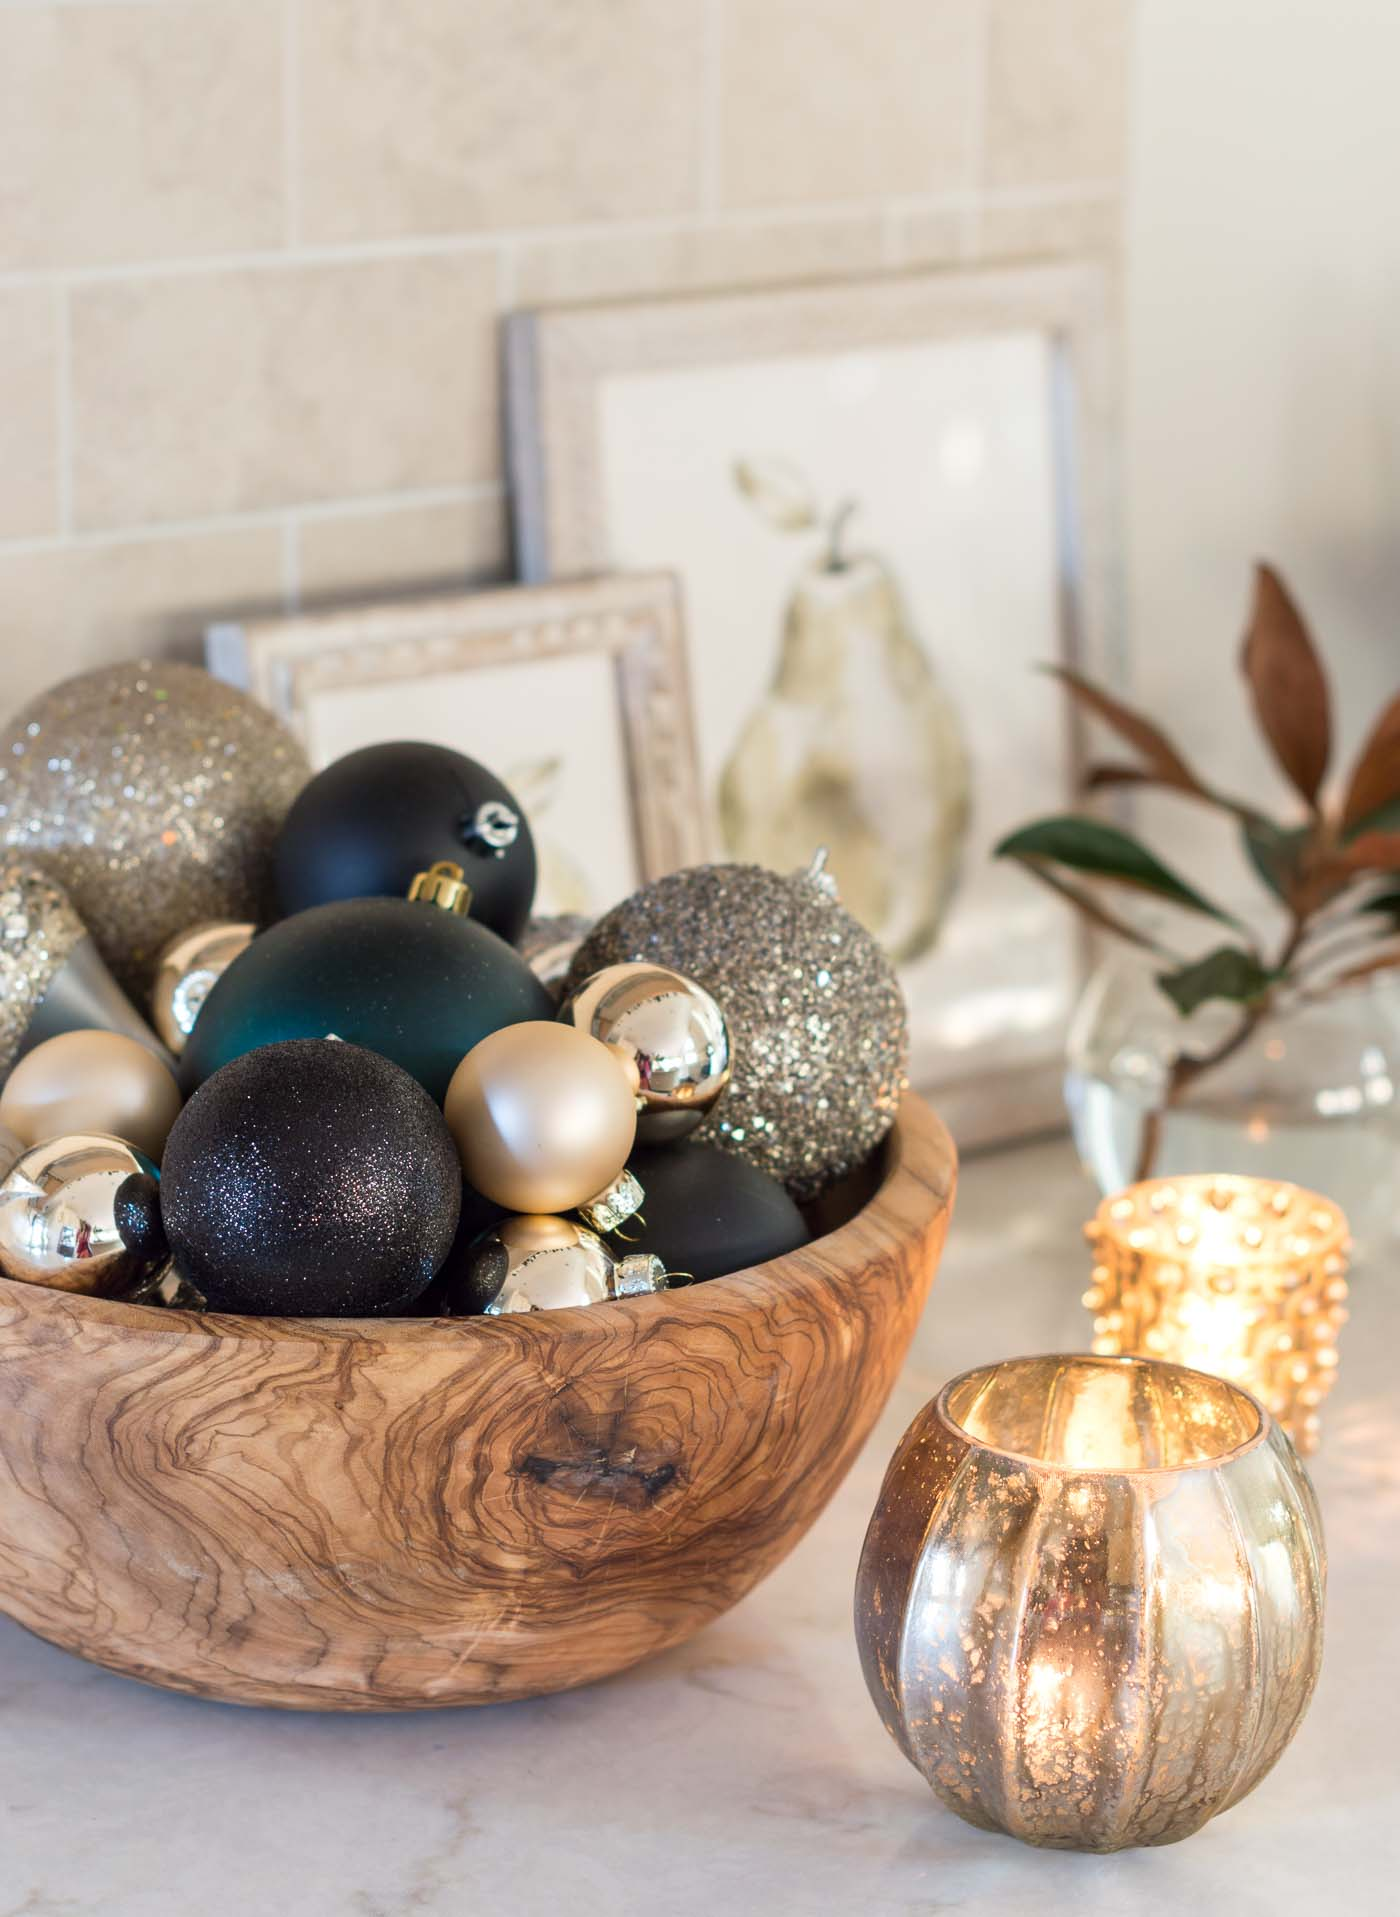 Simple Christmas kitchen decorations